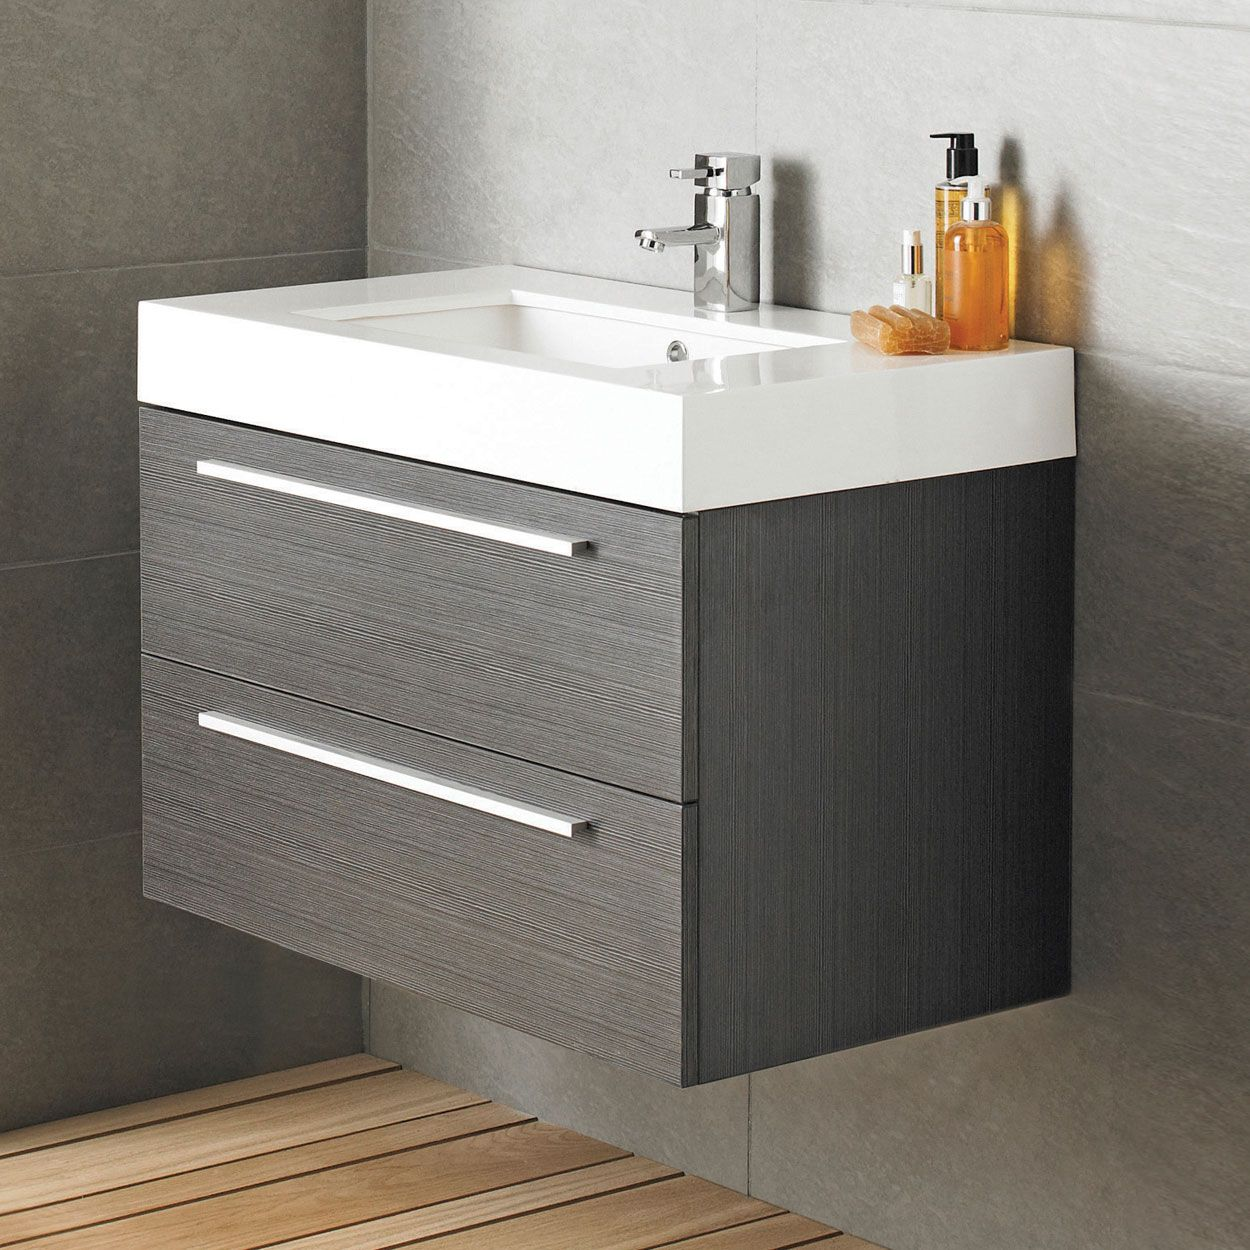 Bathroom sink and vanity unit - Designer Style Silhouette Basin And Cabinet Wall Hung Grey Bathroom Vanity Storage Unit